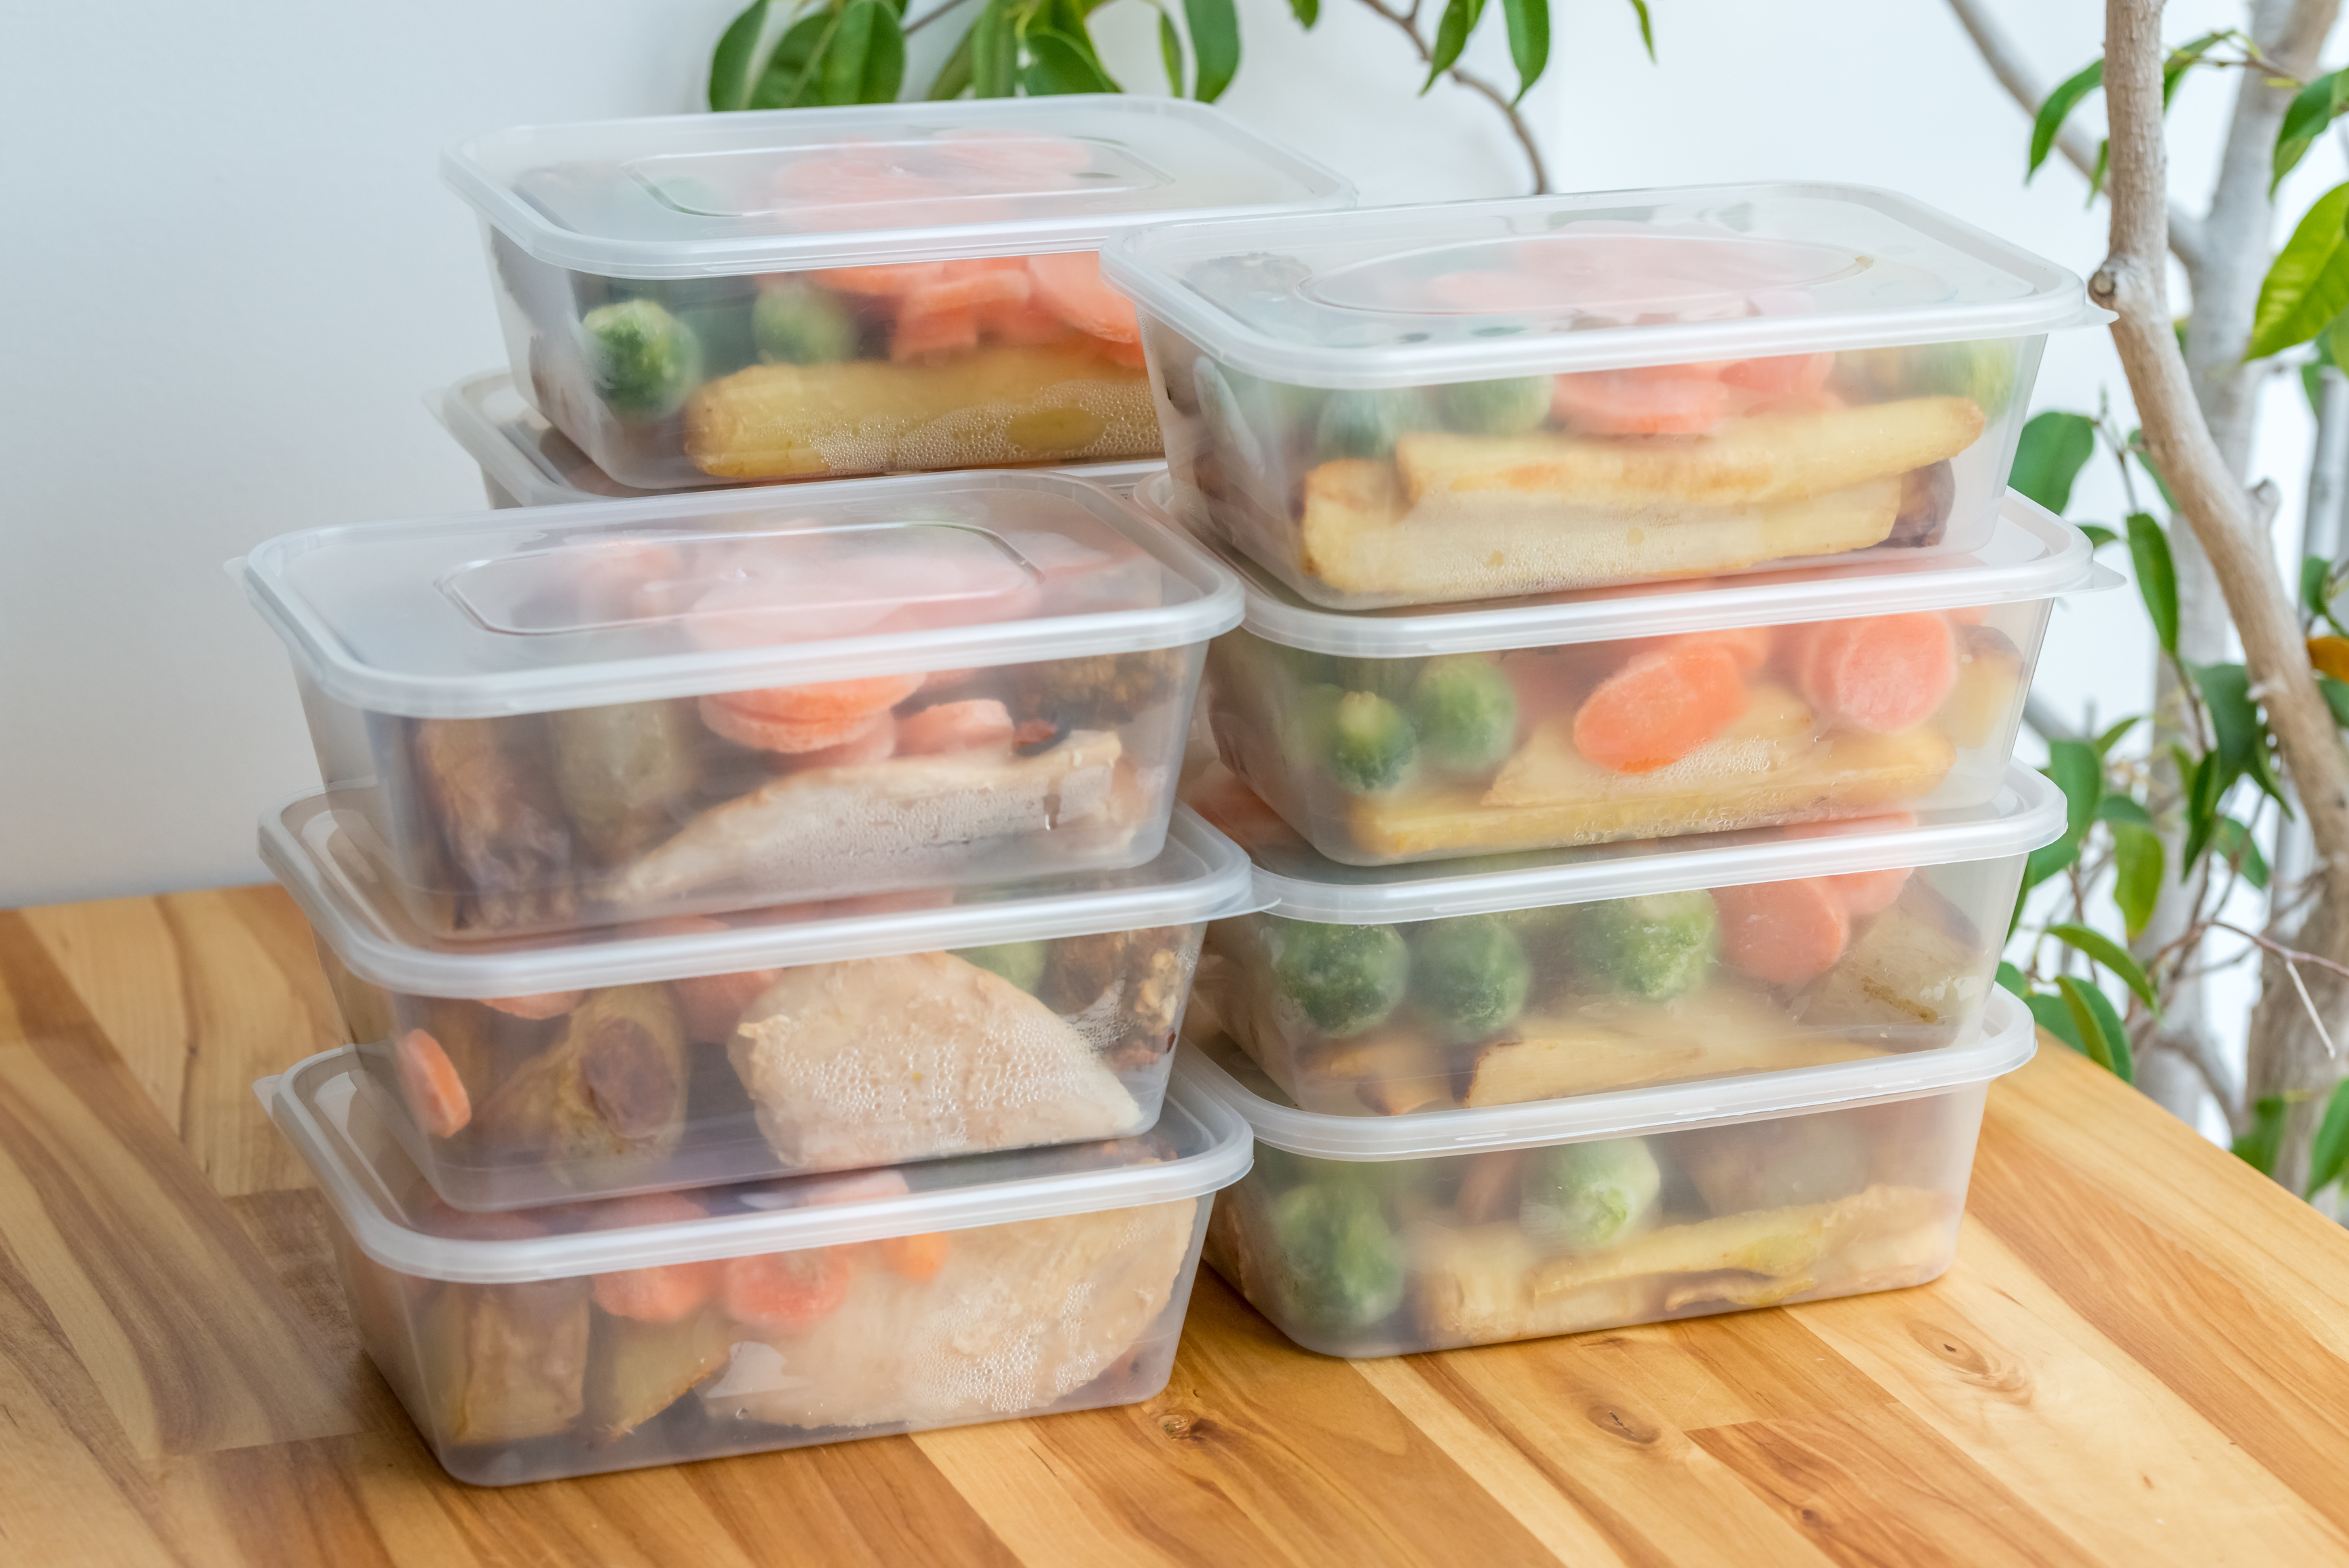 How to Meal Prep Breakfast for Busy Mornings